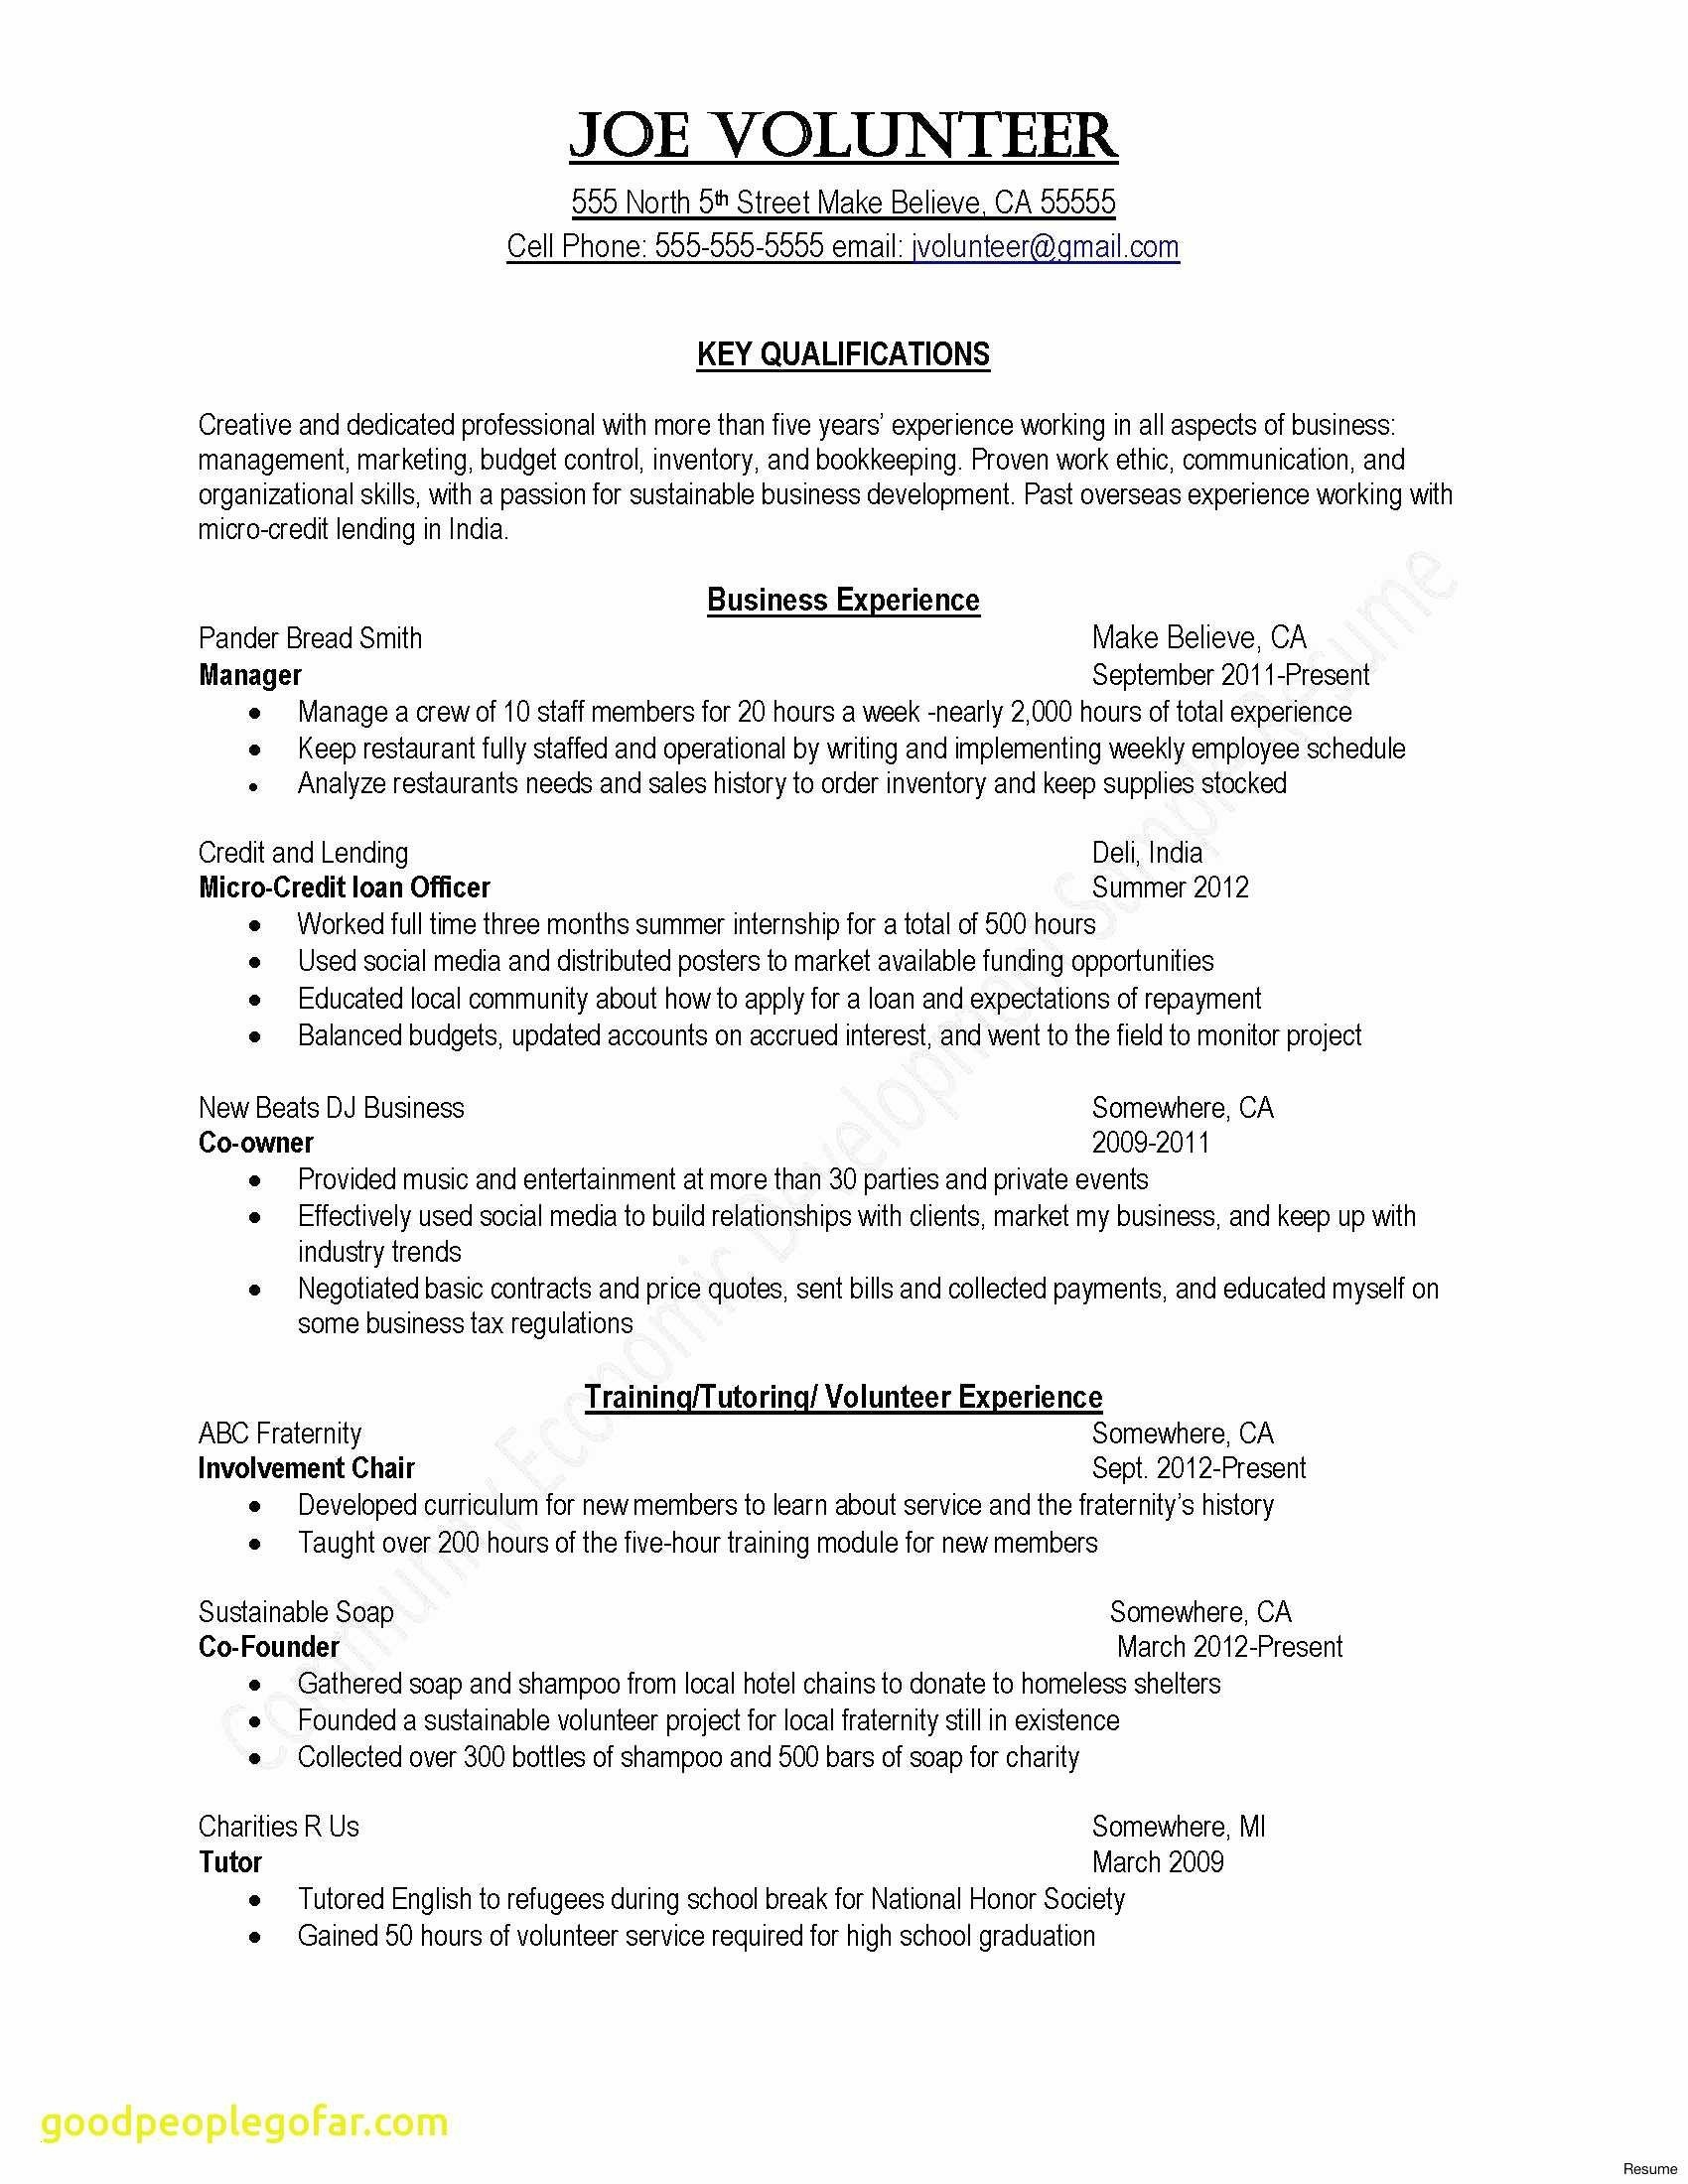 college application resume template free example-Resume for Marketing Professional Fresh Elegant Sample College Application Resume Lovely Painter Resume 0d 18-b